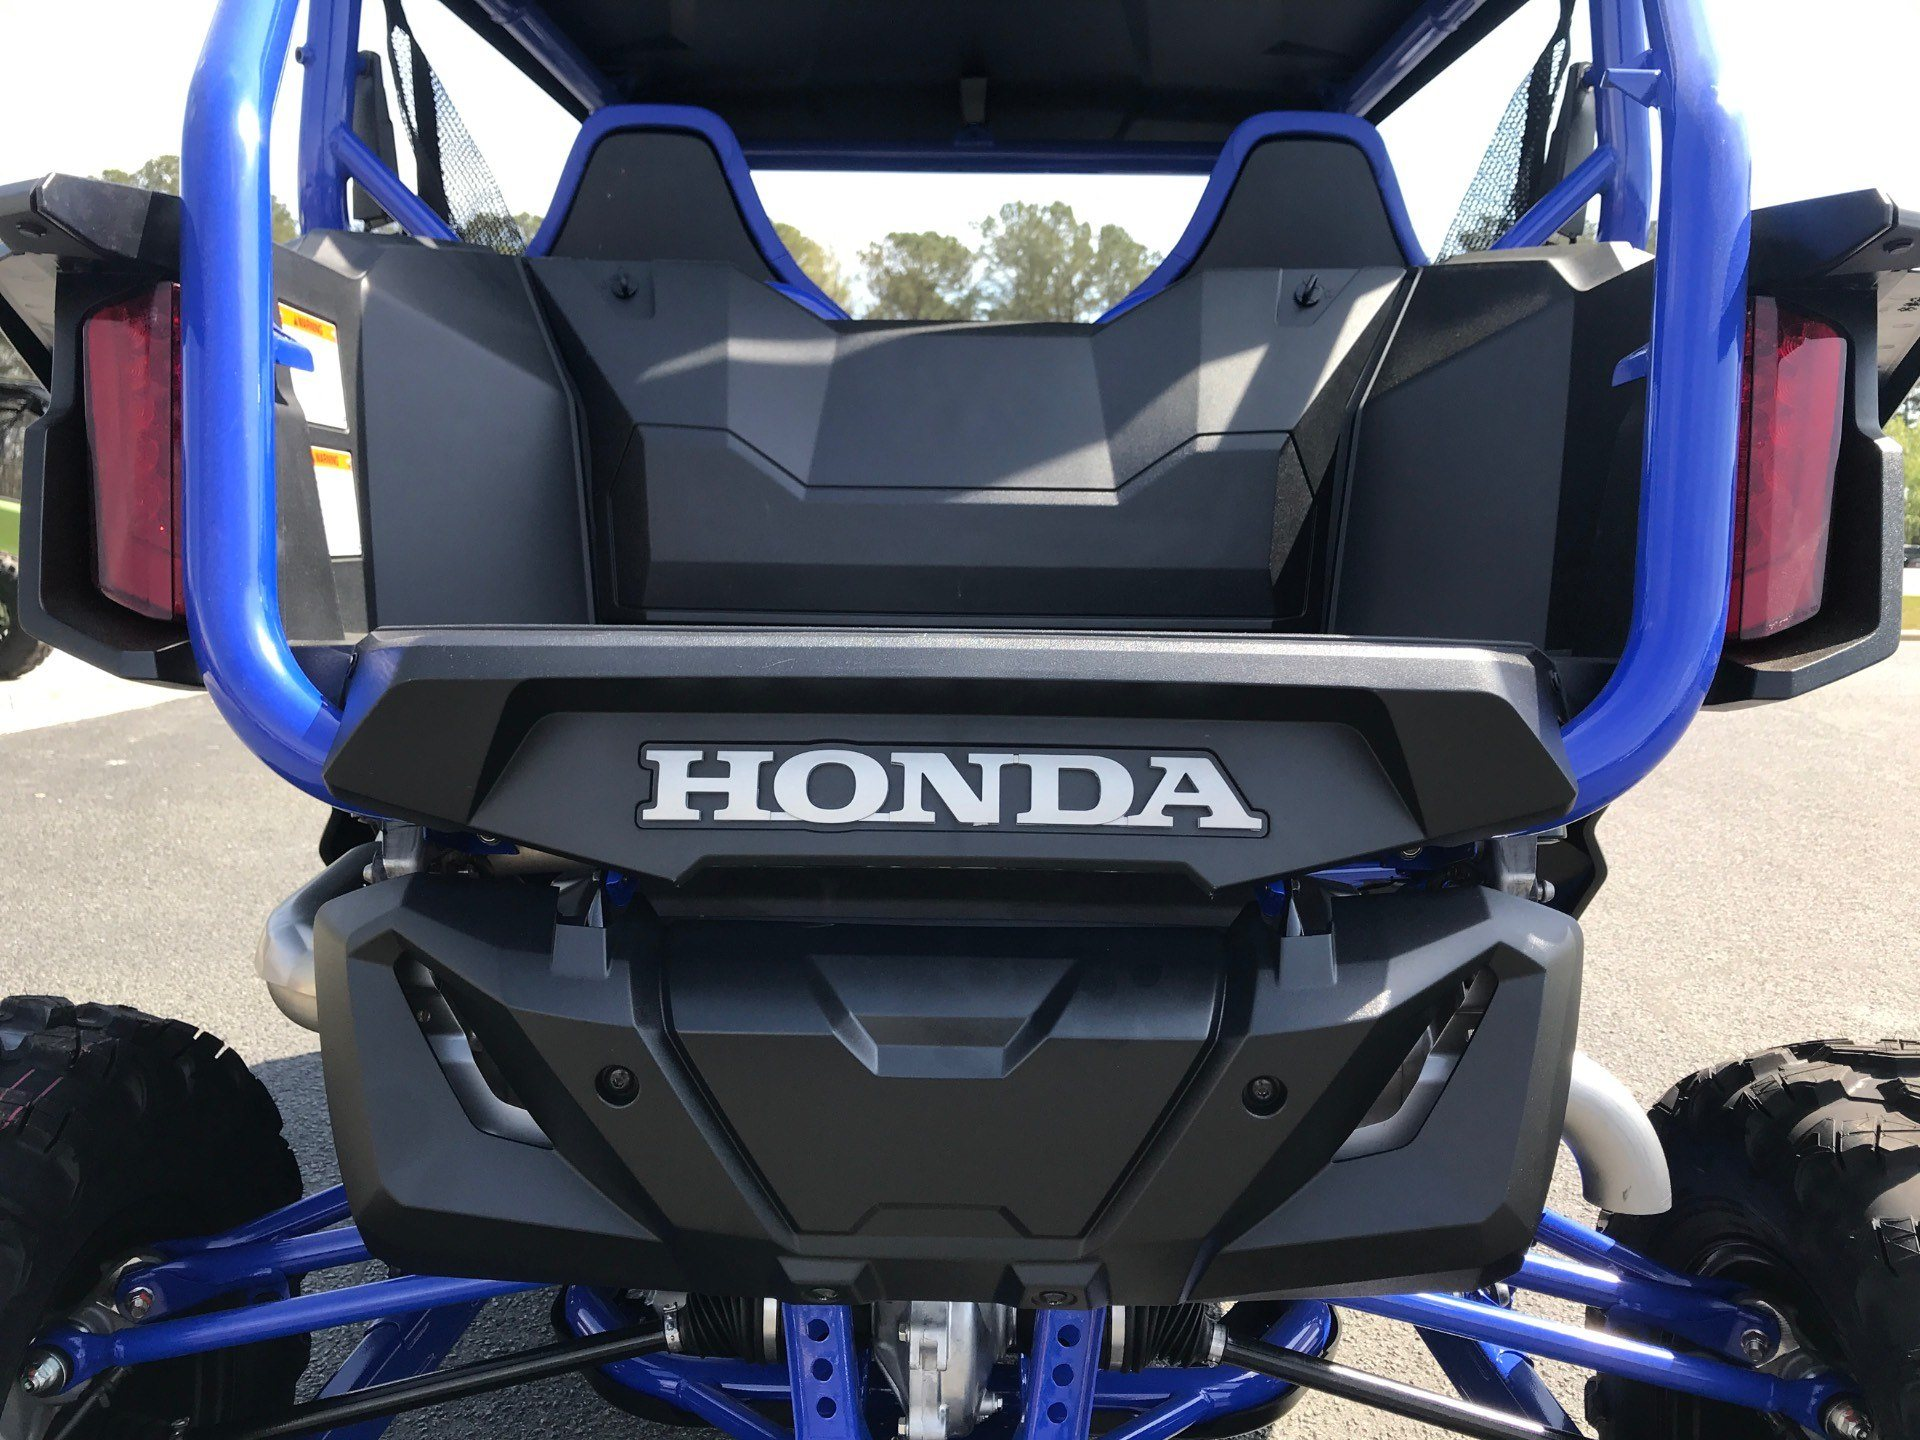 2021 Honda Talon 1000R FOX Live Valve in Greenville, North Carolina - Photo 19